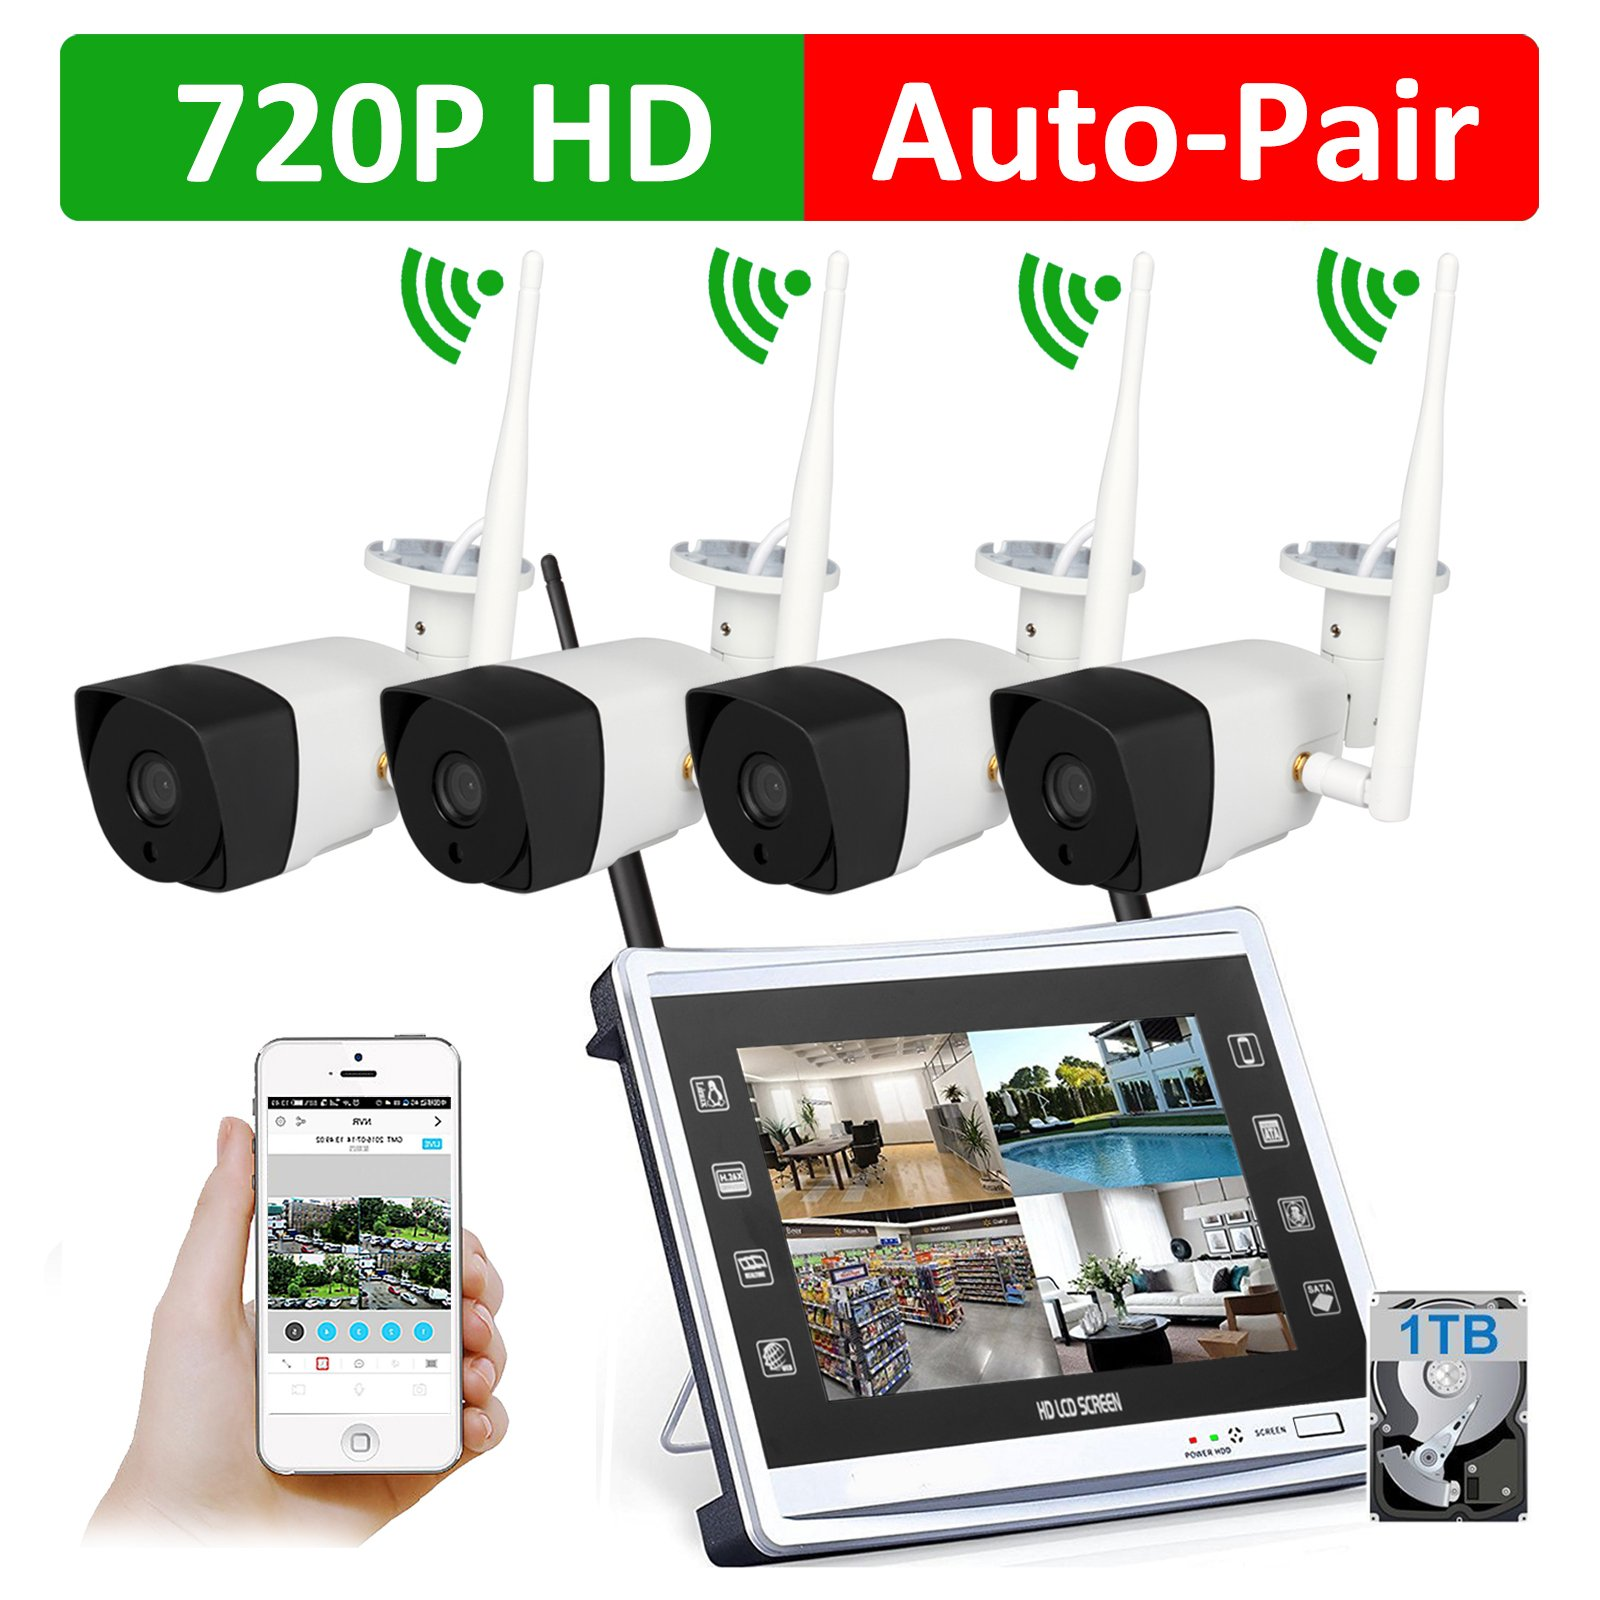 4 Cameras 720P HD LCD Wireless Home Security Surveillance Video System 1.3MP 10'' Monitor NVR, Motion Detection, Outdoor Waterproof WiFi Bridging Night Vision IP Camera, 1TB HDD (Router Built-in)